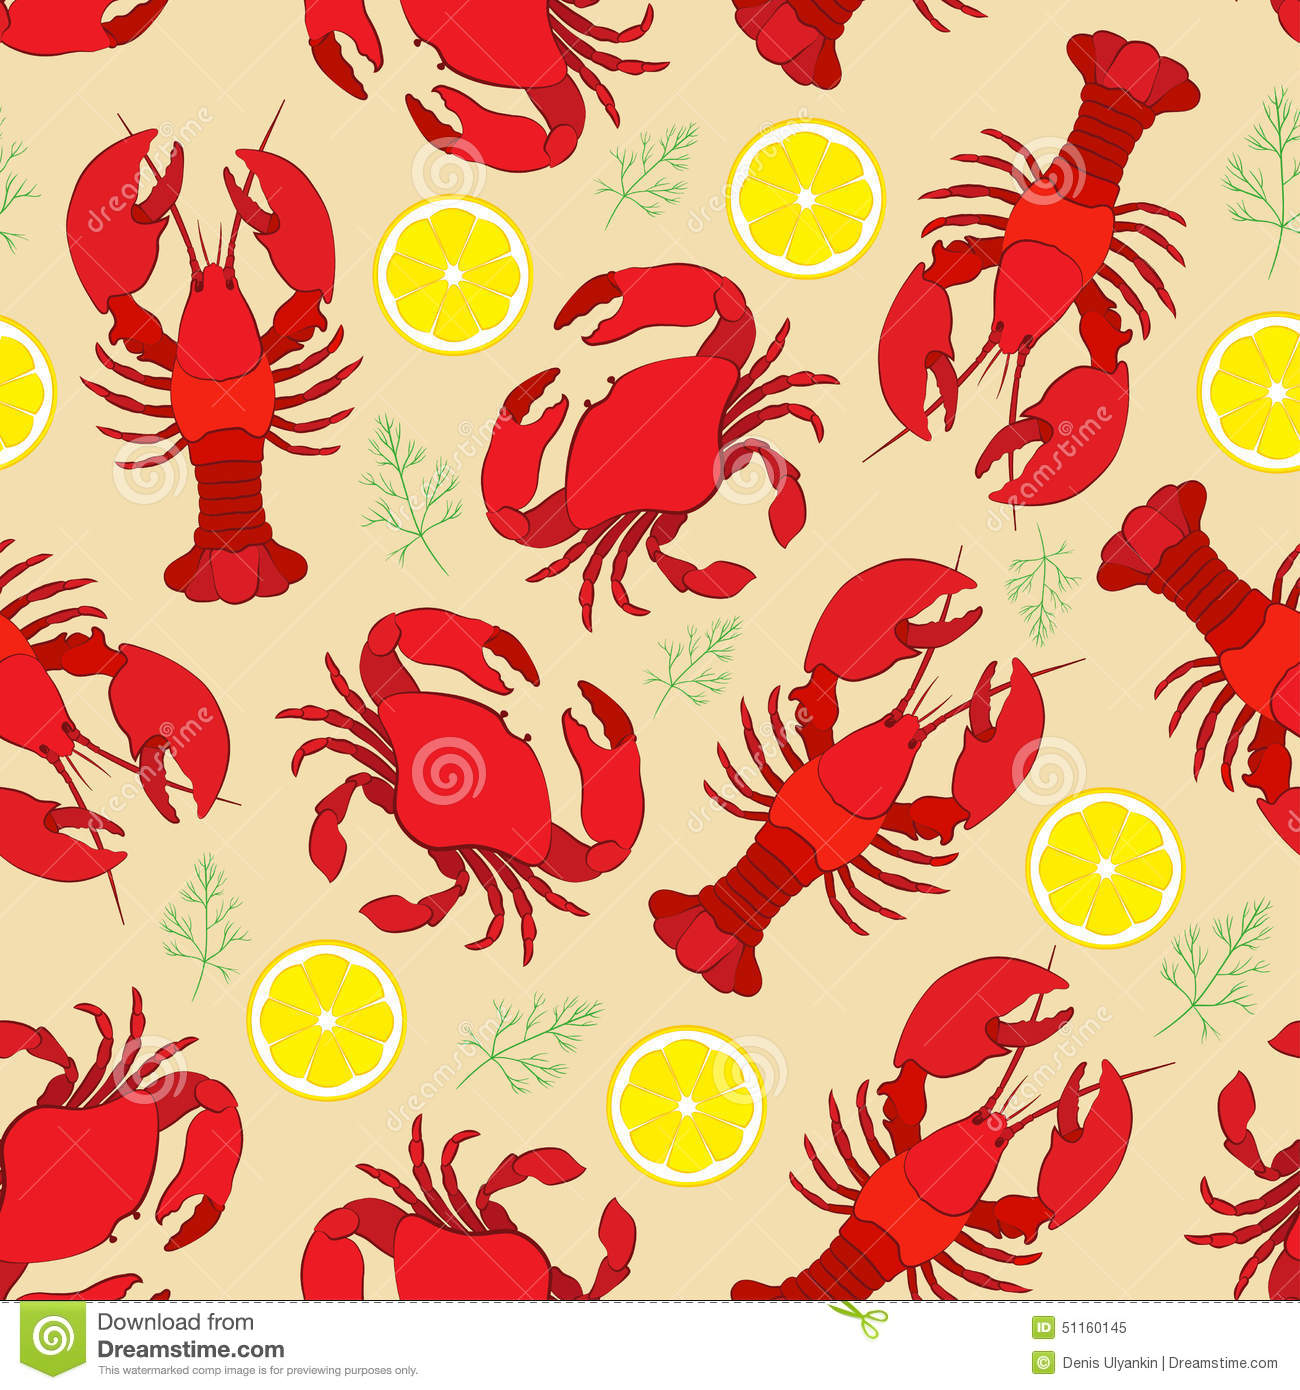 Lobster and crab with lemon and dill